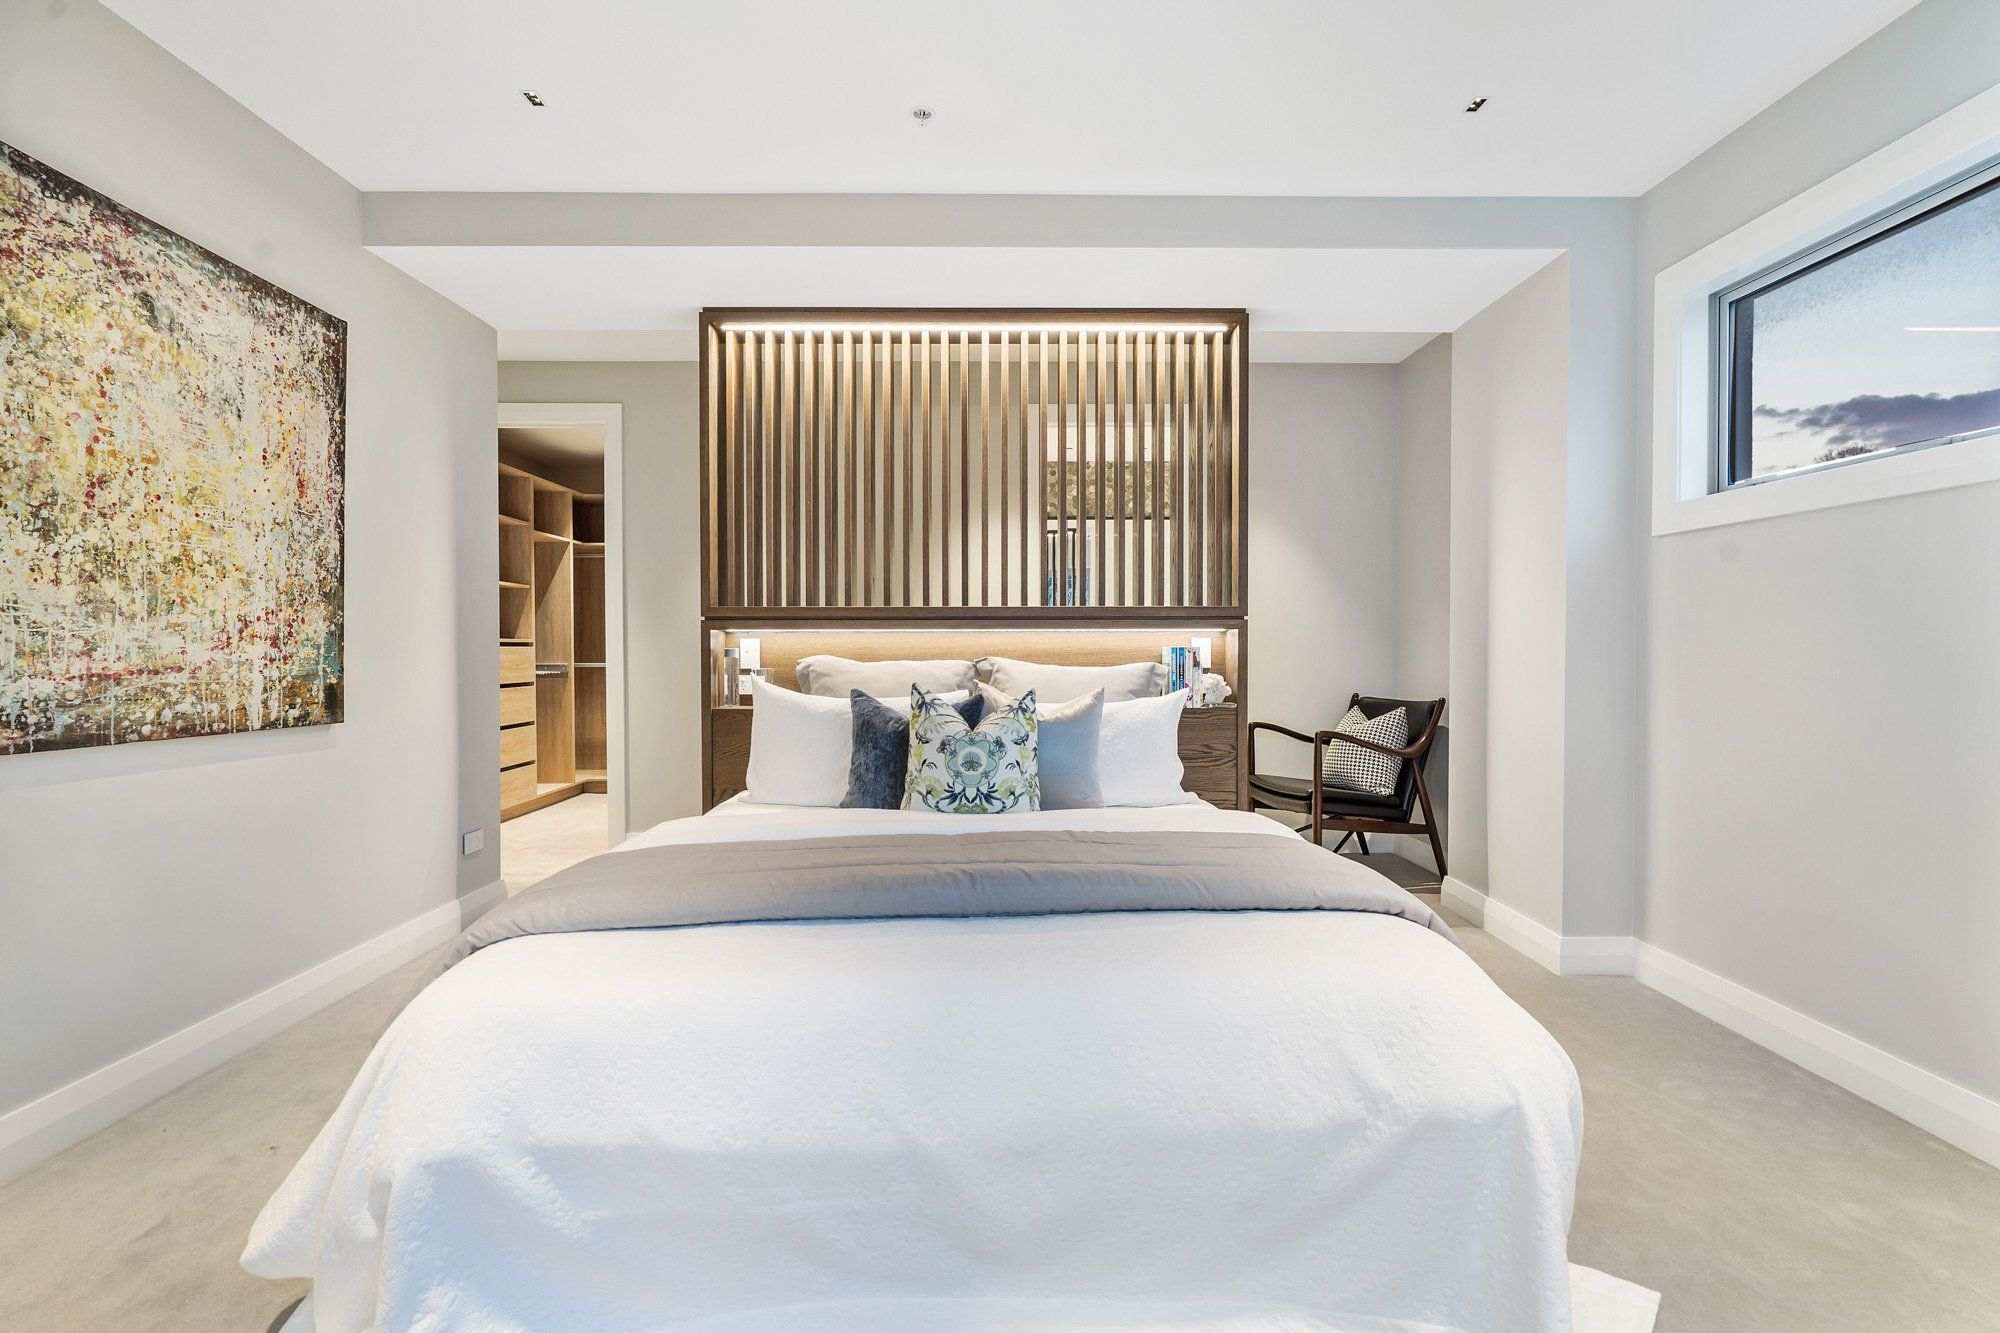 Bedroom with white duvet and cushions